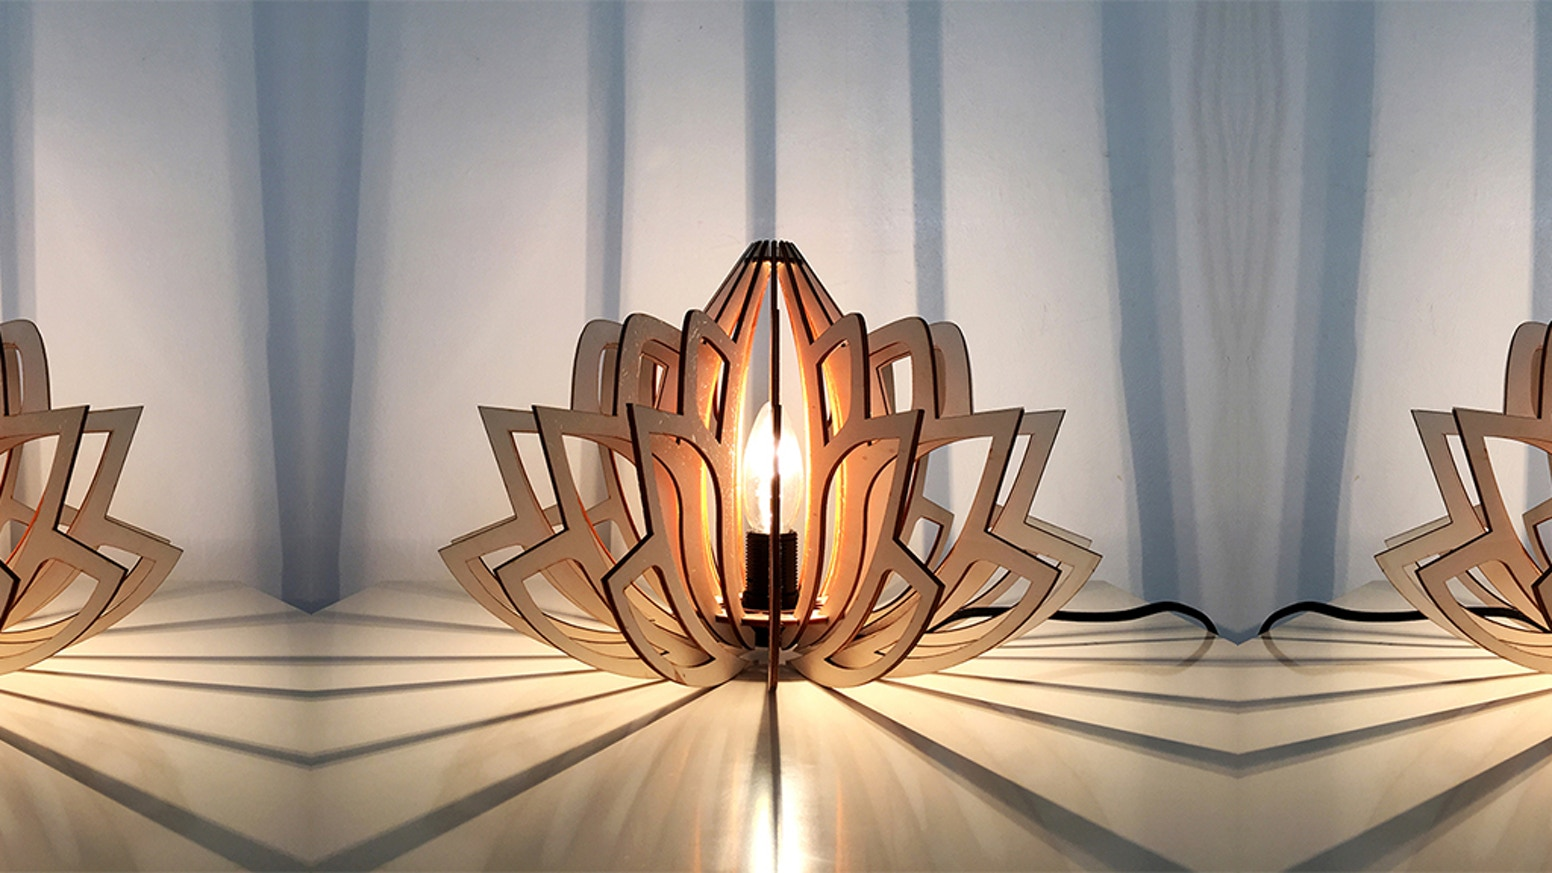 100% eco-friendly wood lamps made in Paris. Let them shine in your heaven of peace.